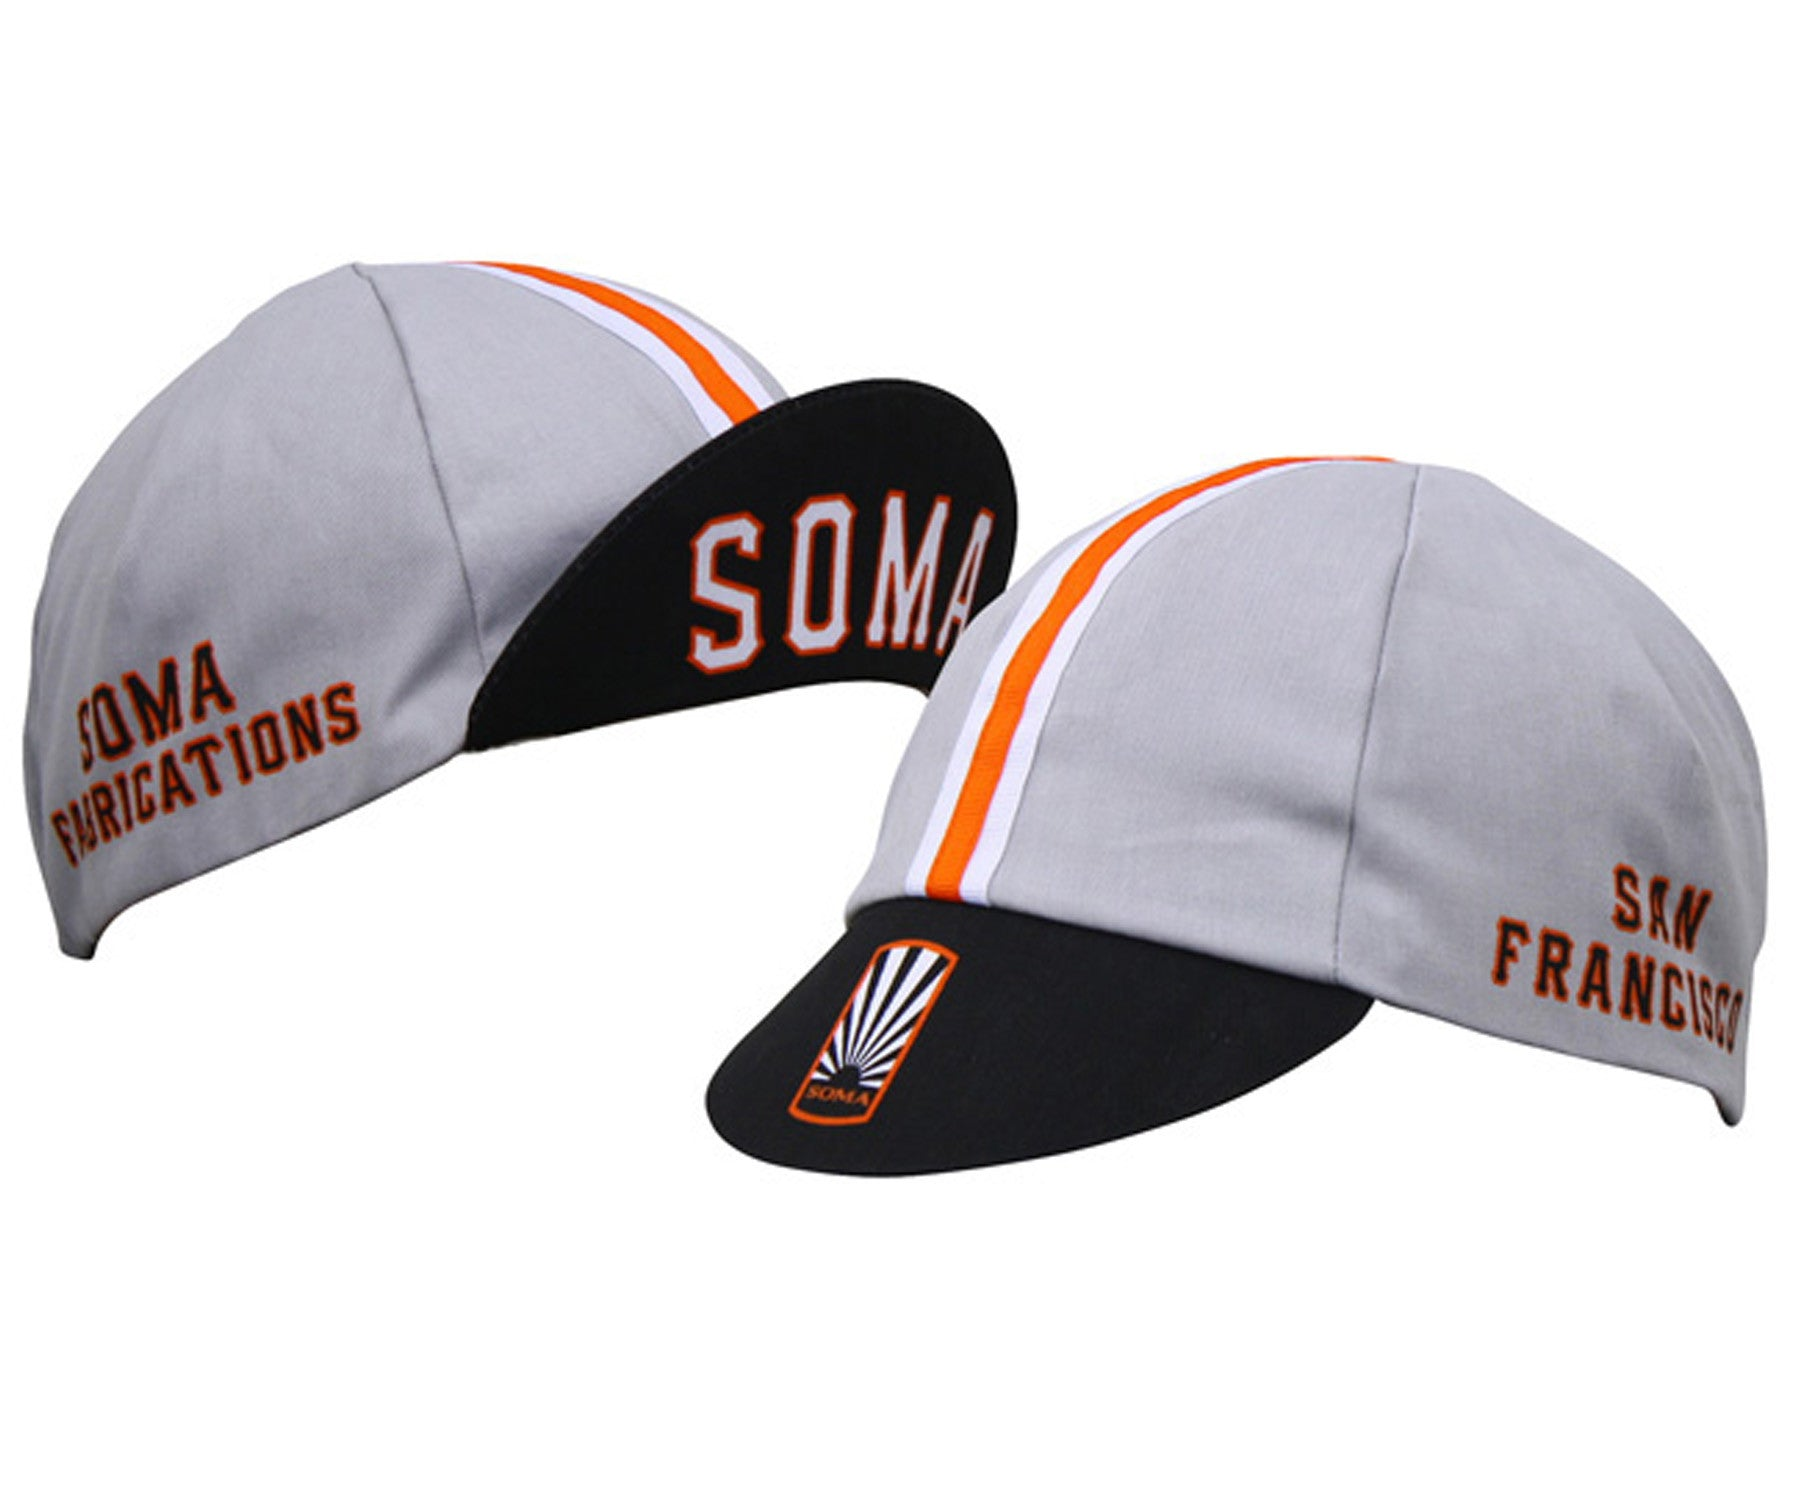 Soma SF cycling cap - Retrogression